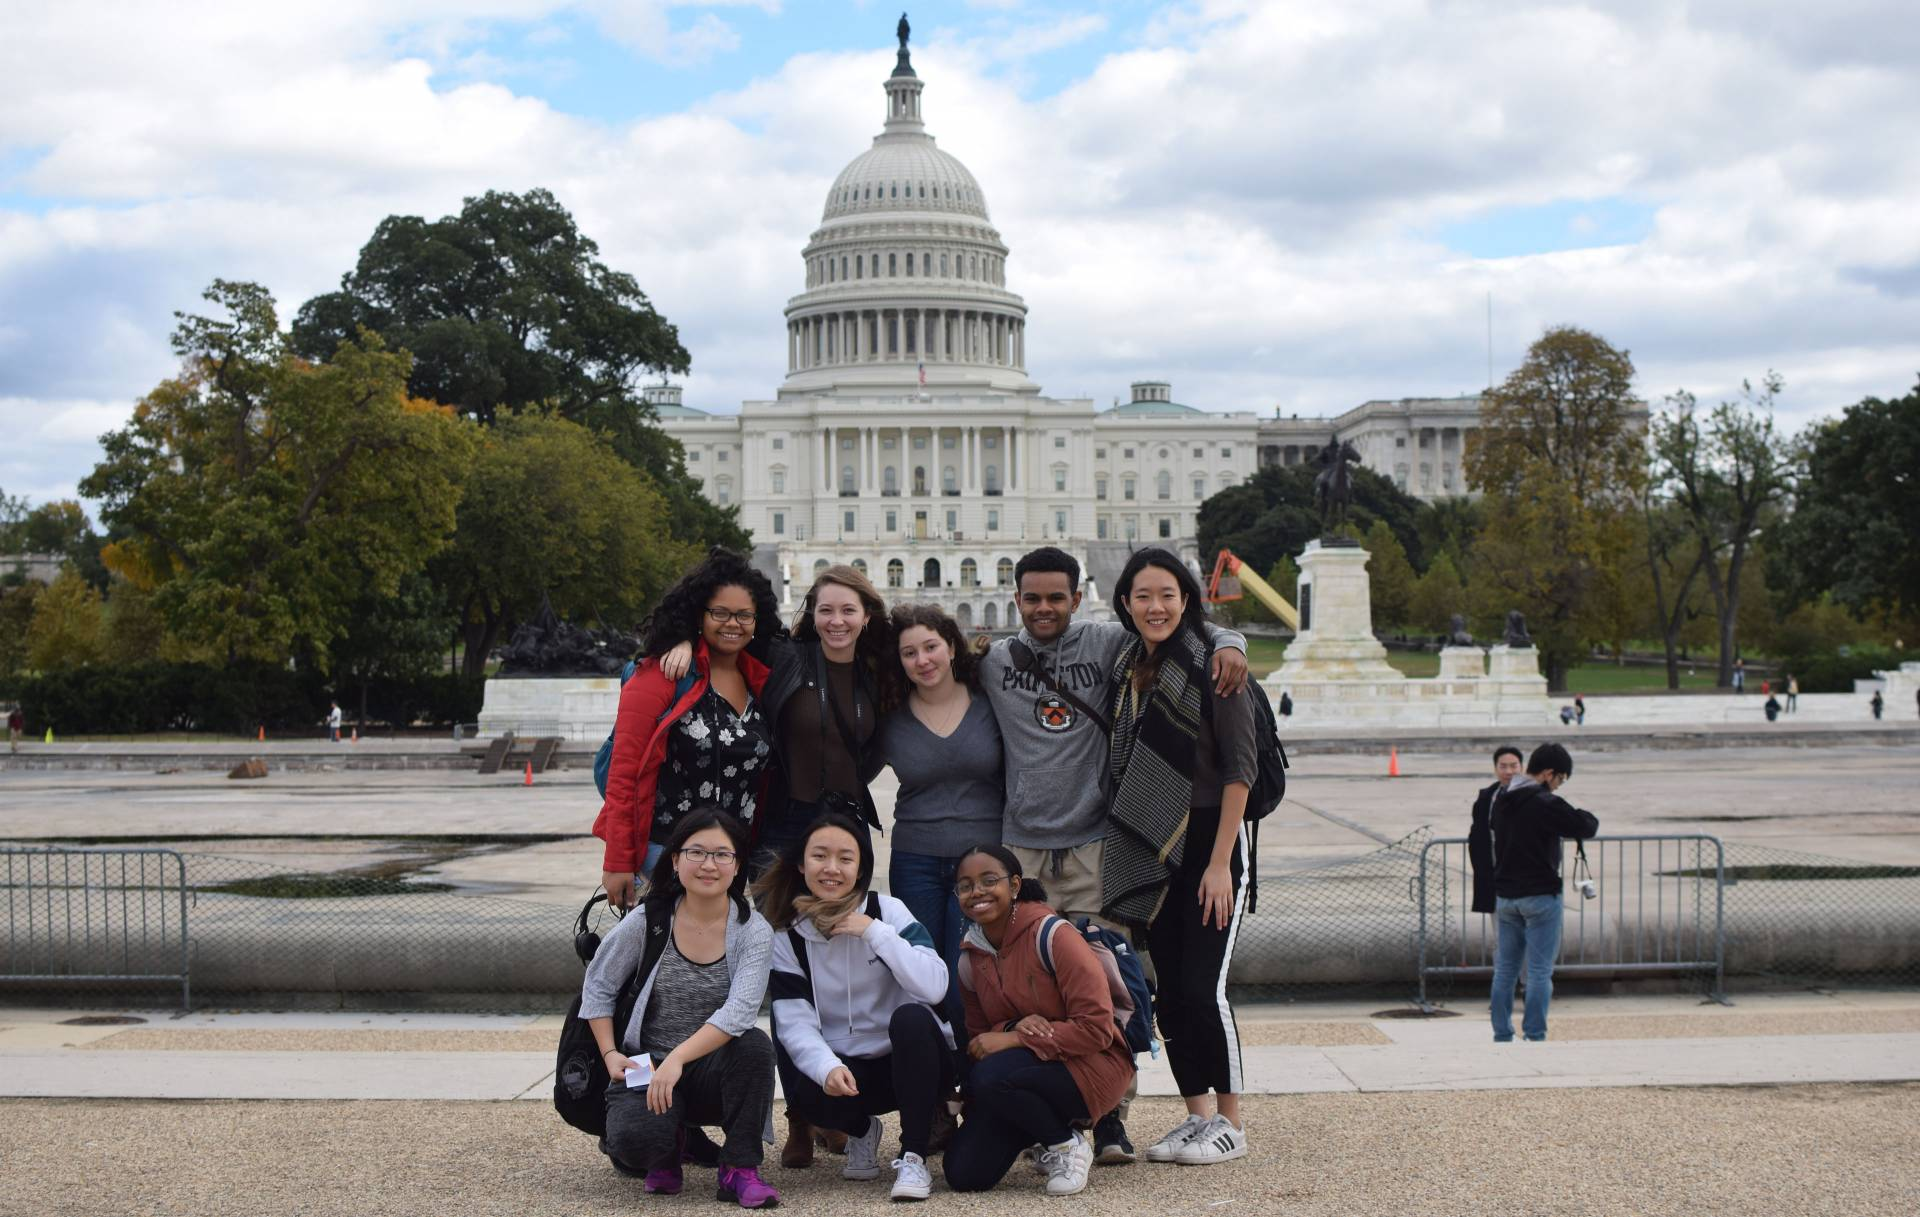 Students posing in front of Capitol building in DC